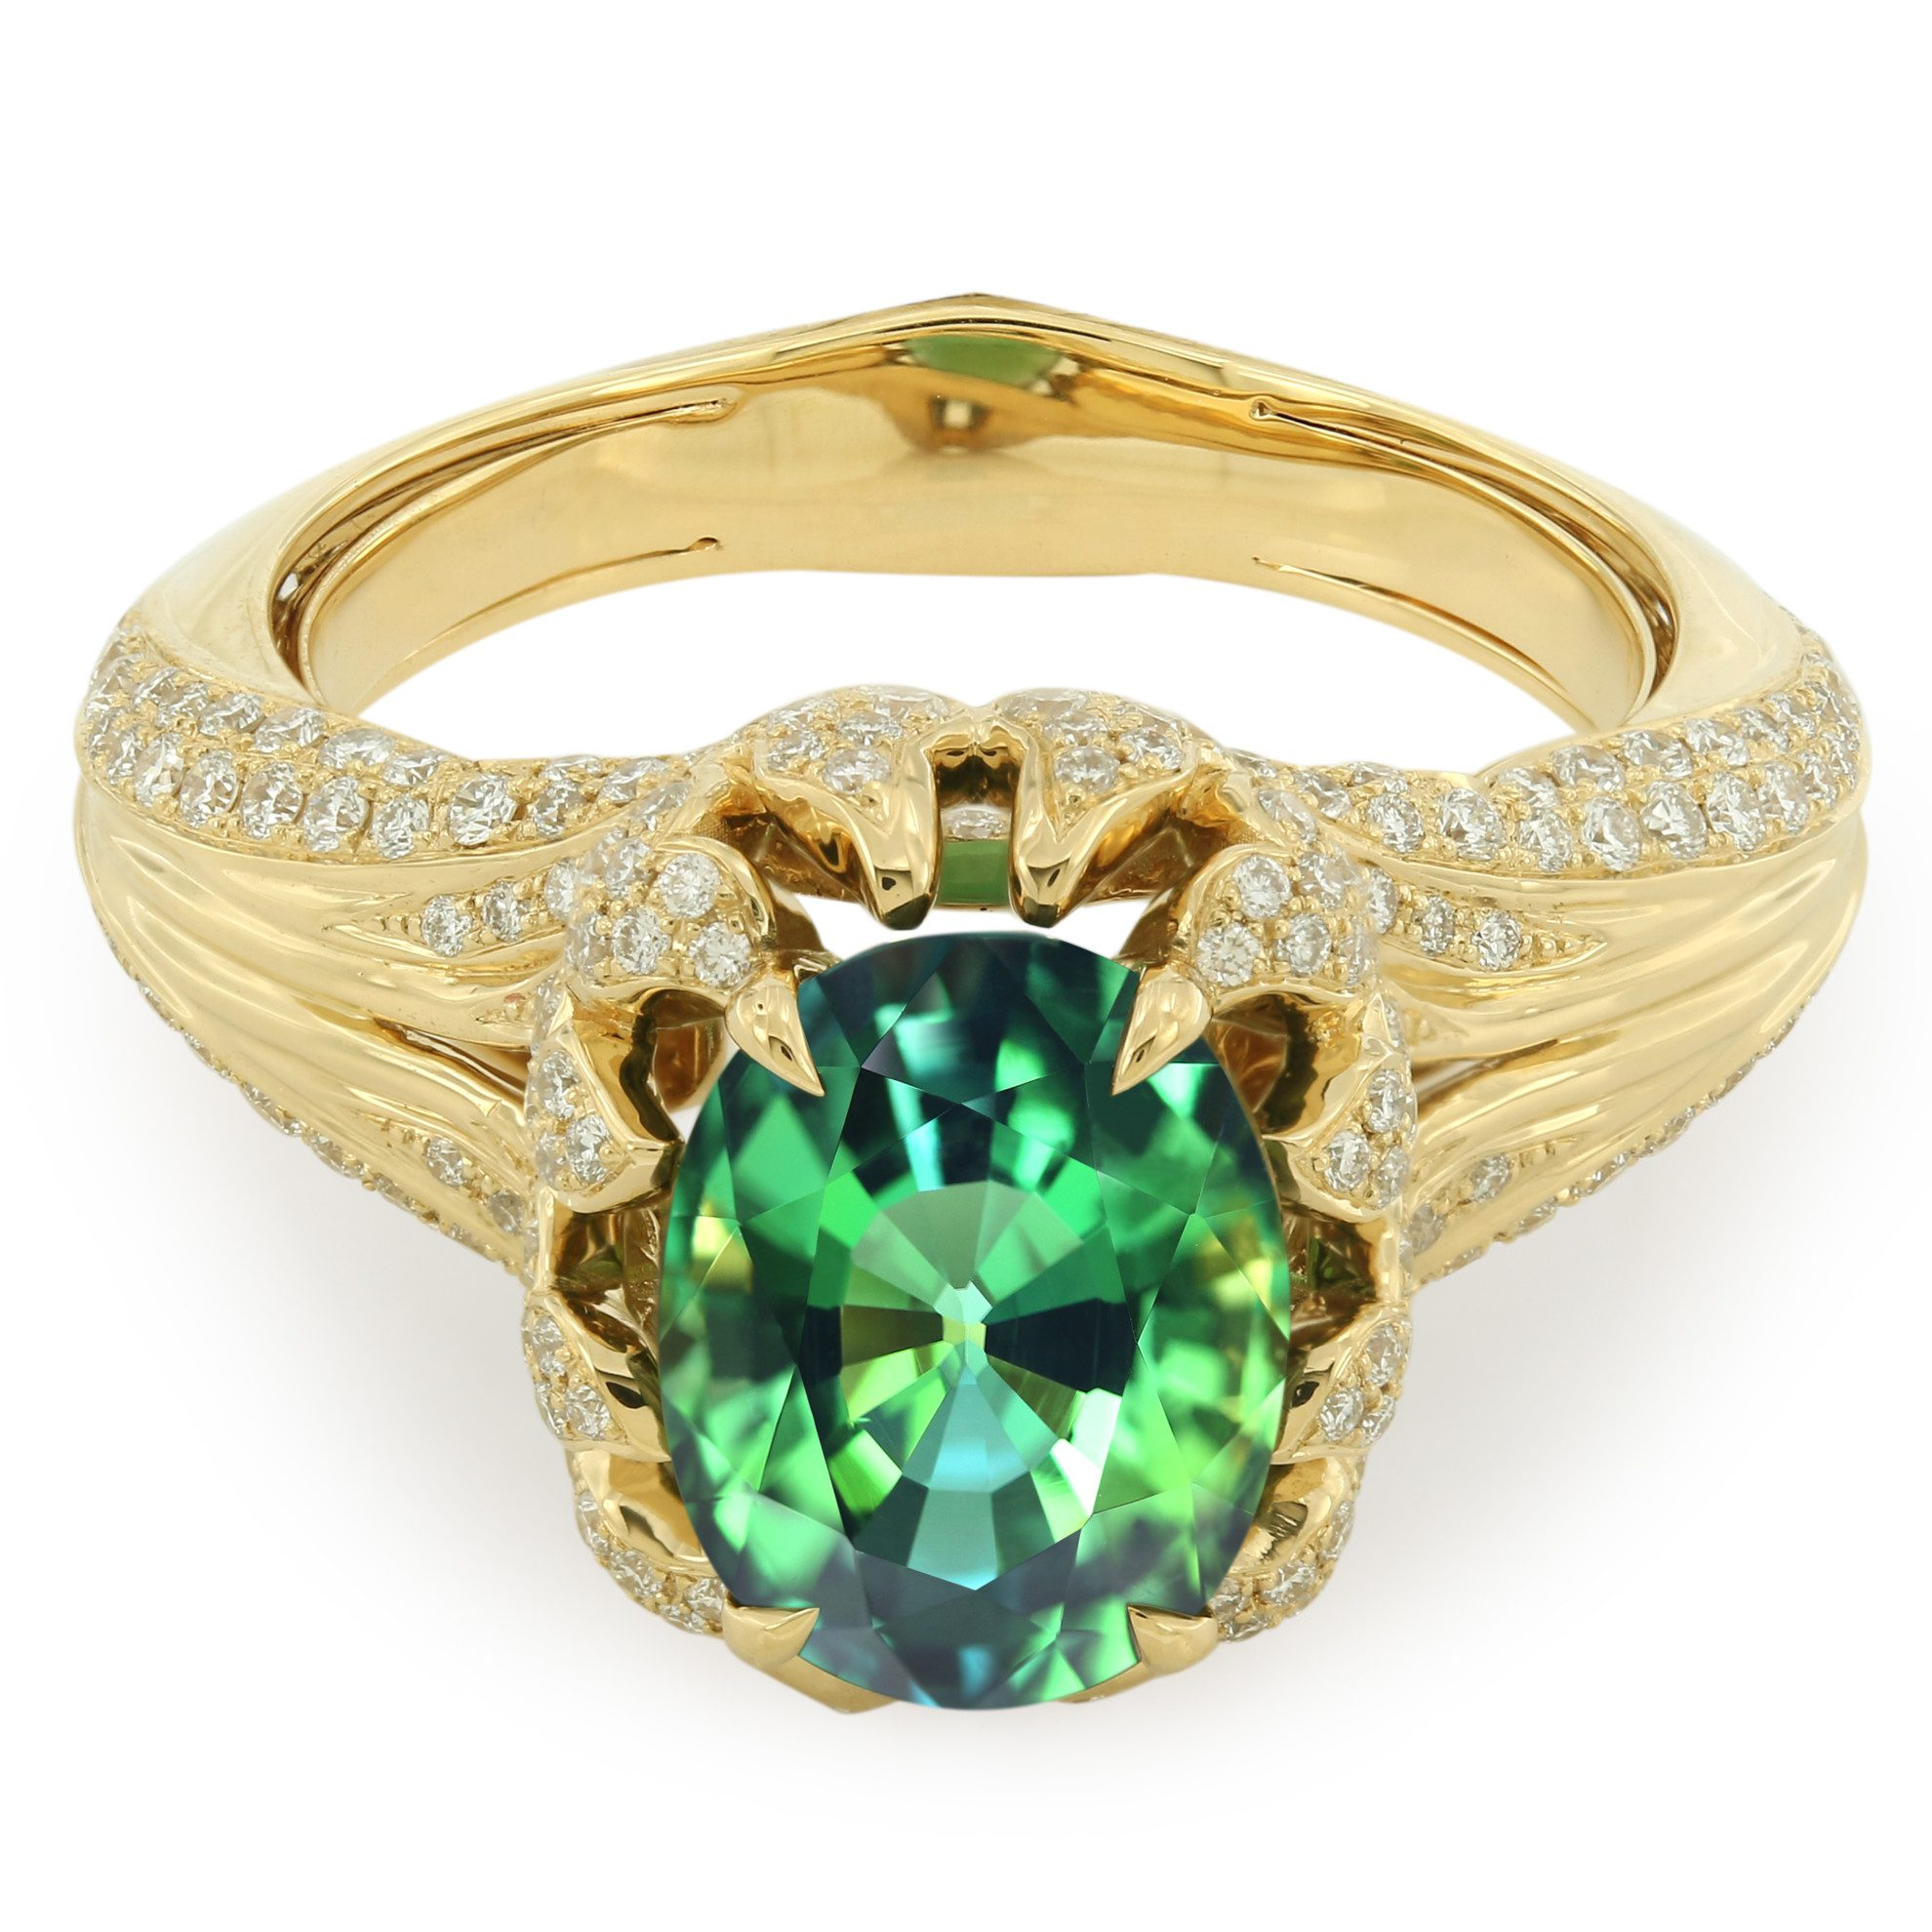 engagement index hbz emerald beautiful wedding green gemstone fashion bridal unique rings